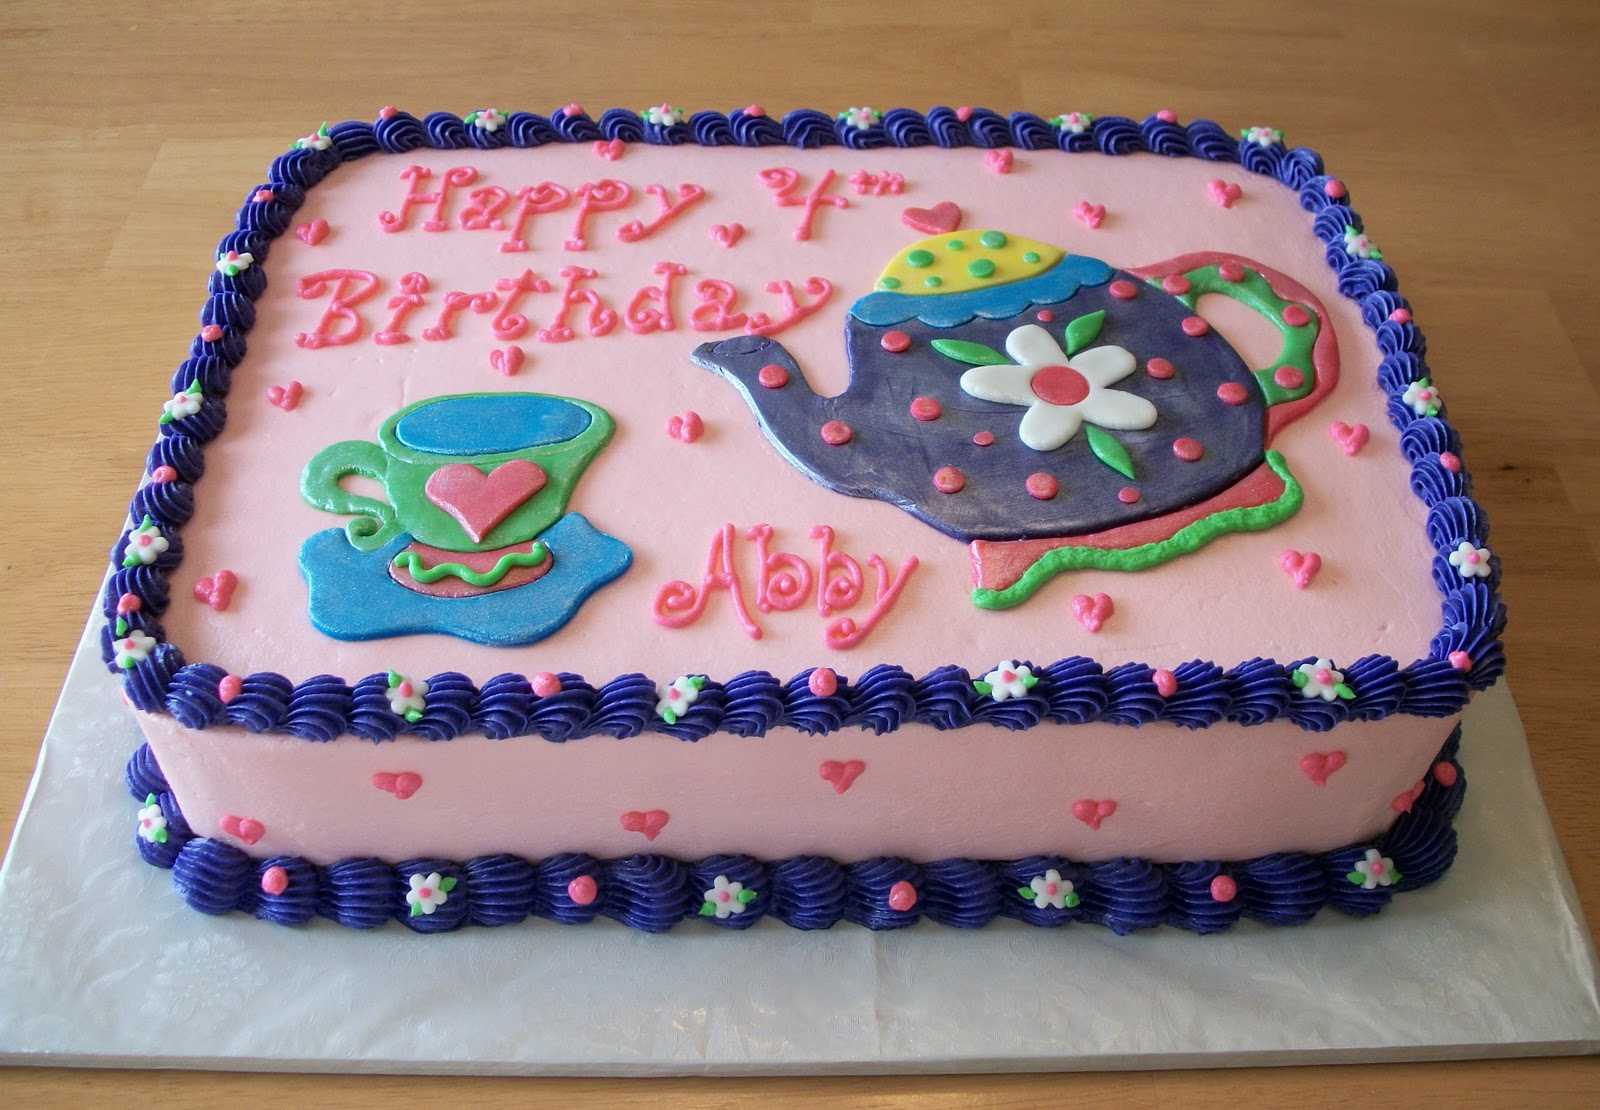 Bellissimo Specialty Cakes Tea Party Birthday Cake 311